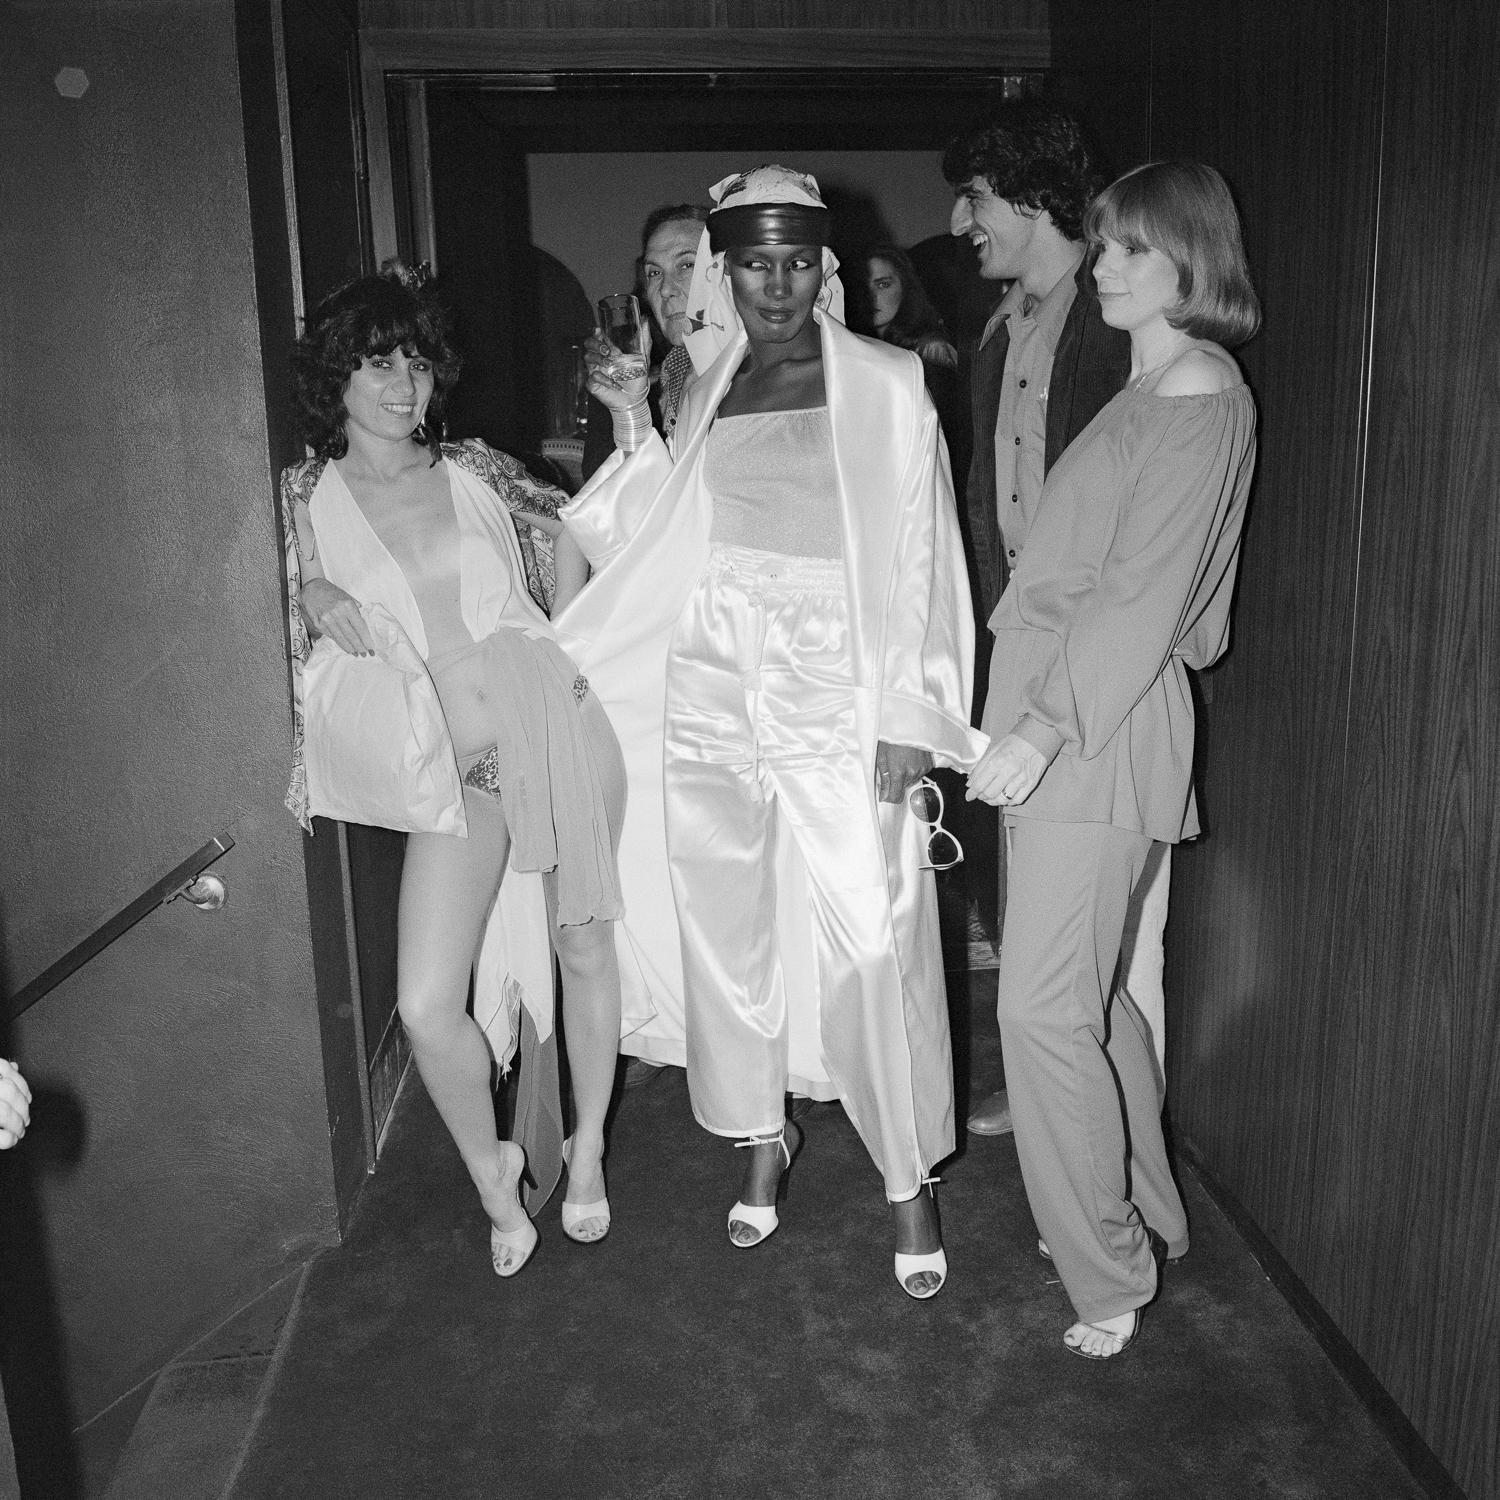 Grace Jones in Hallway with JudiJupiter and Others on Opening Night Le Farfalle